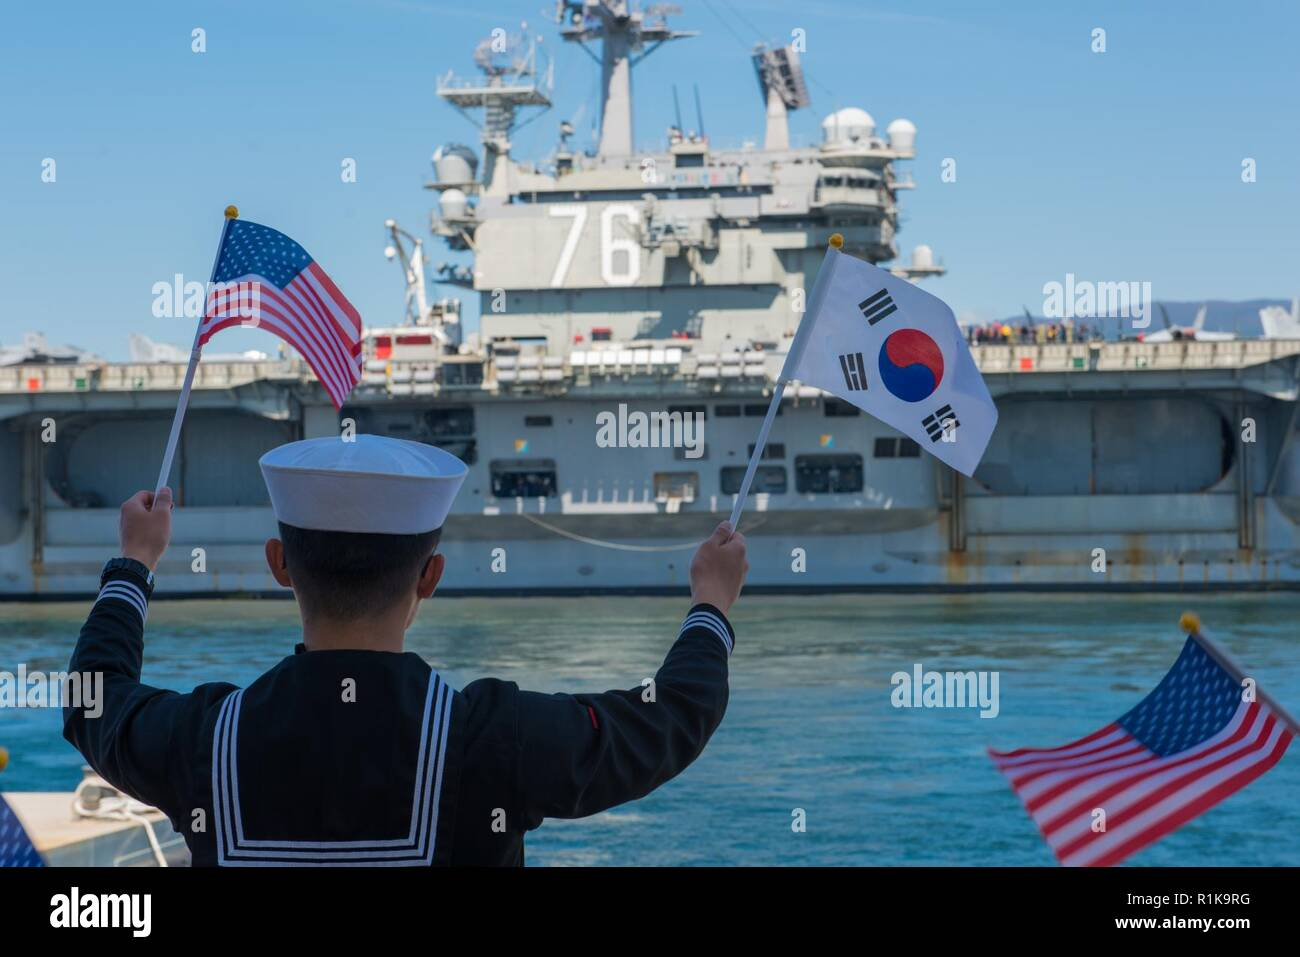 JEJU ISLAND, Republic of Korea, (Oct. 12, 2018) The nimitz-class nuclear-powered aircraft carrier USS Ronald Reagan (CVN 76) pulls in to port at the Republic of Korea (ROK) Navy base in Jeju. Ronald Reagan is forward-deployed to the U.S. 7th Fleet area of operations in support of security and stability in the Indo-Pacific region. Stock Photo